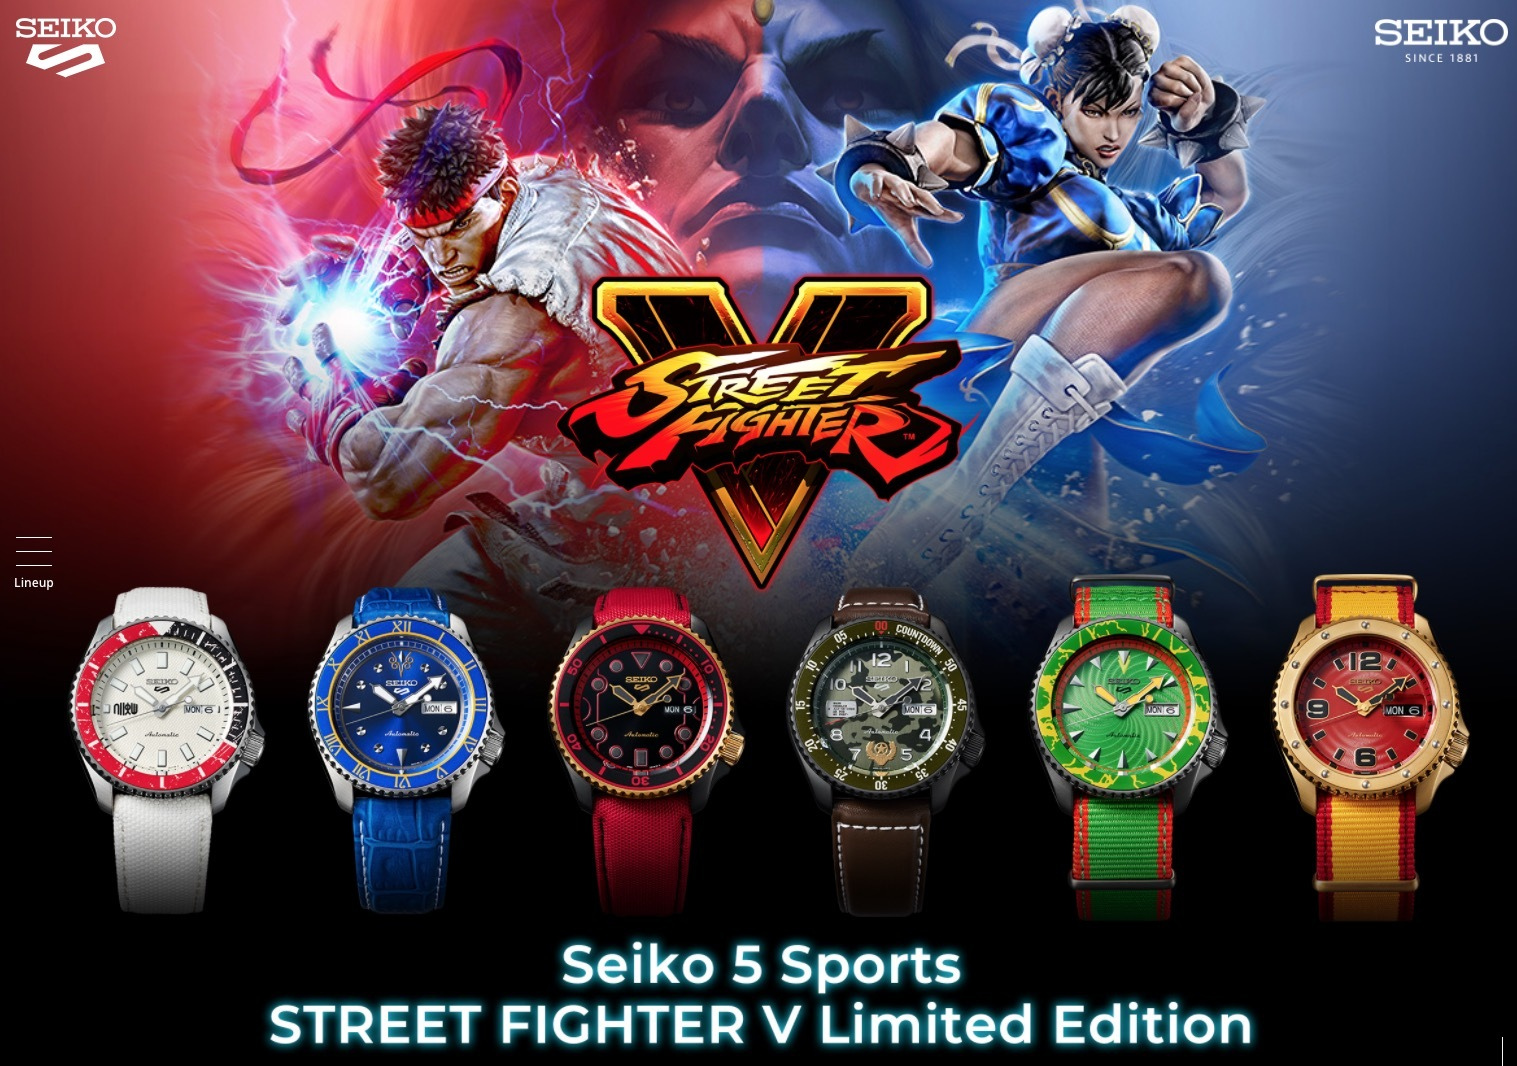 Seiko_5_Sport_street_fighter_V_limited_edition_rannekellot_netista